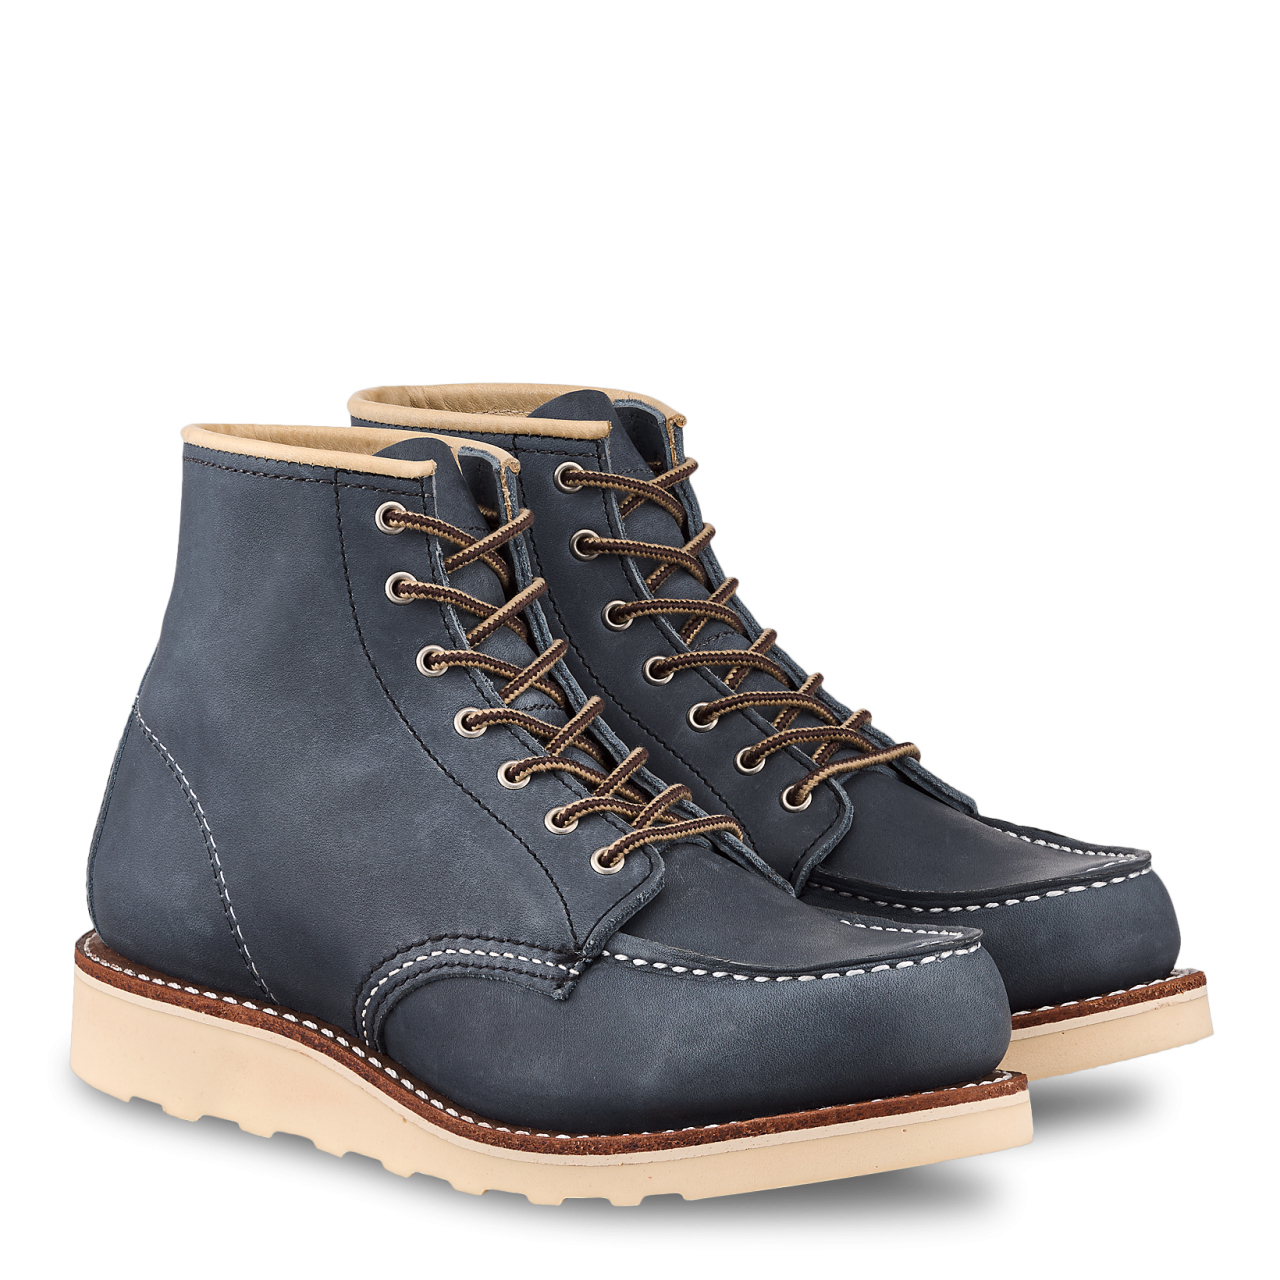 Red Wing 3353 Moc Toe